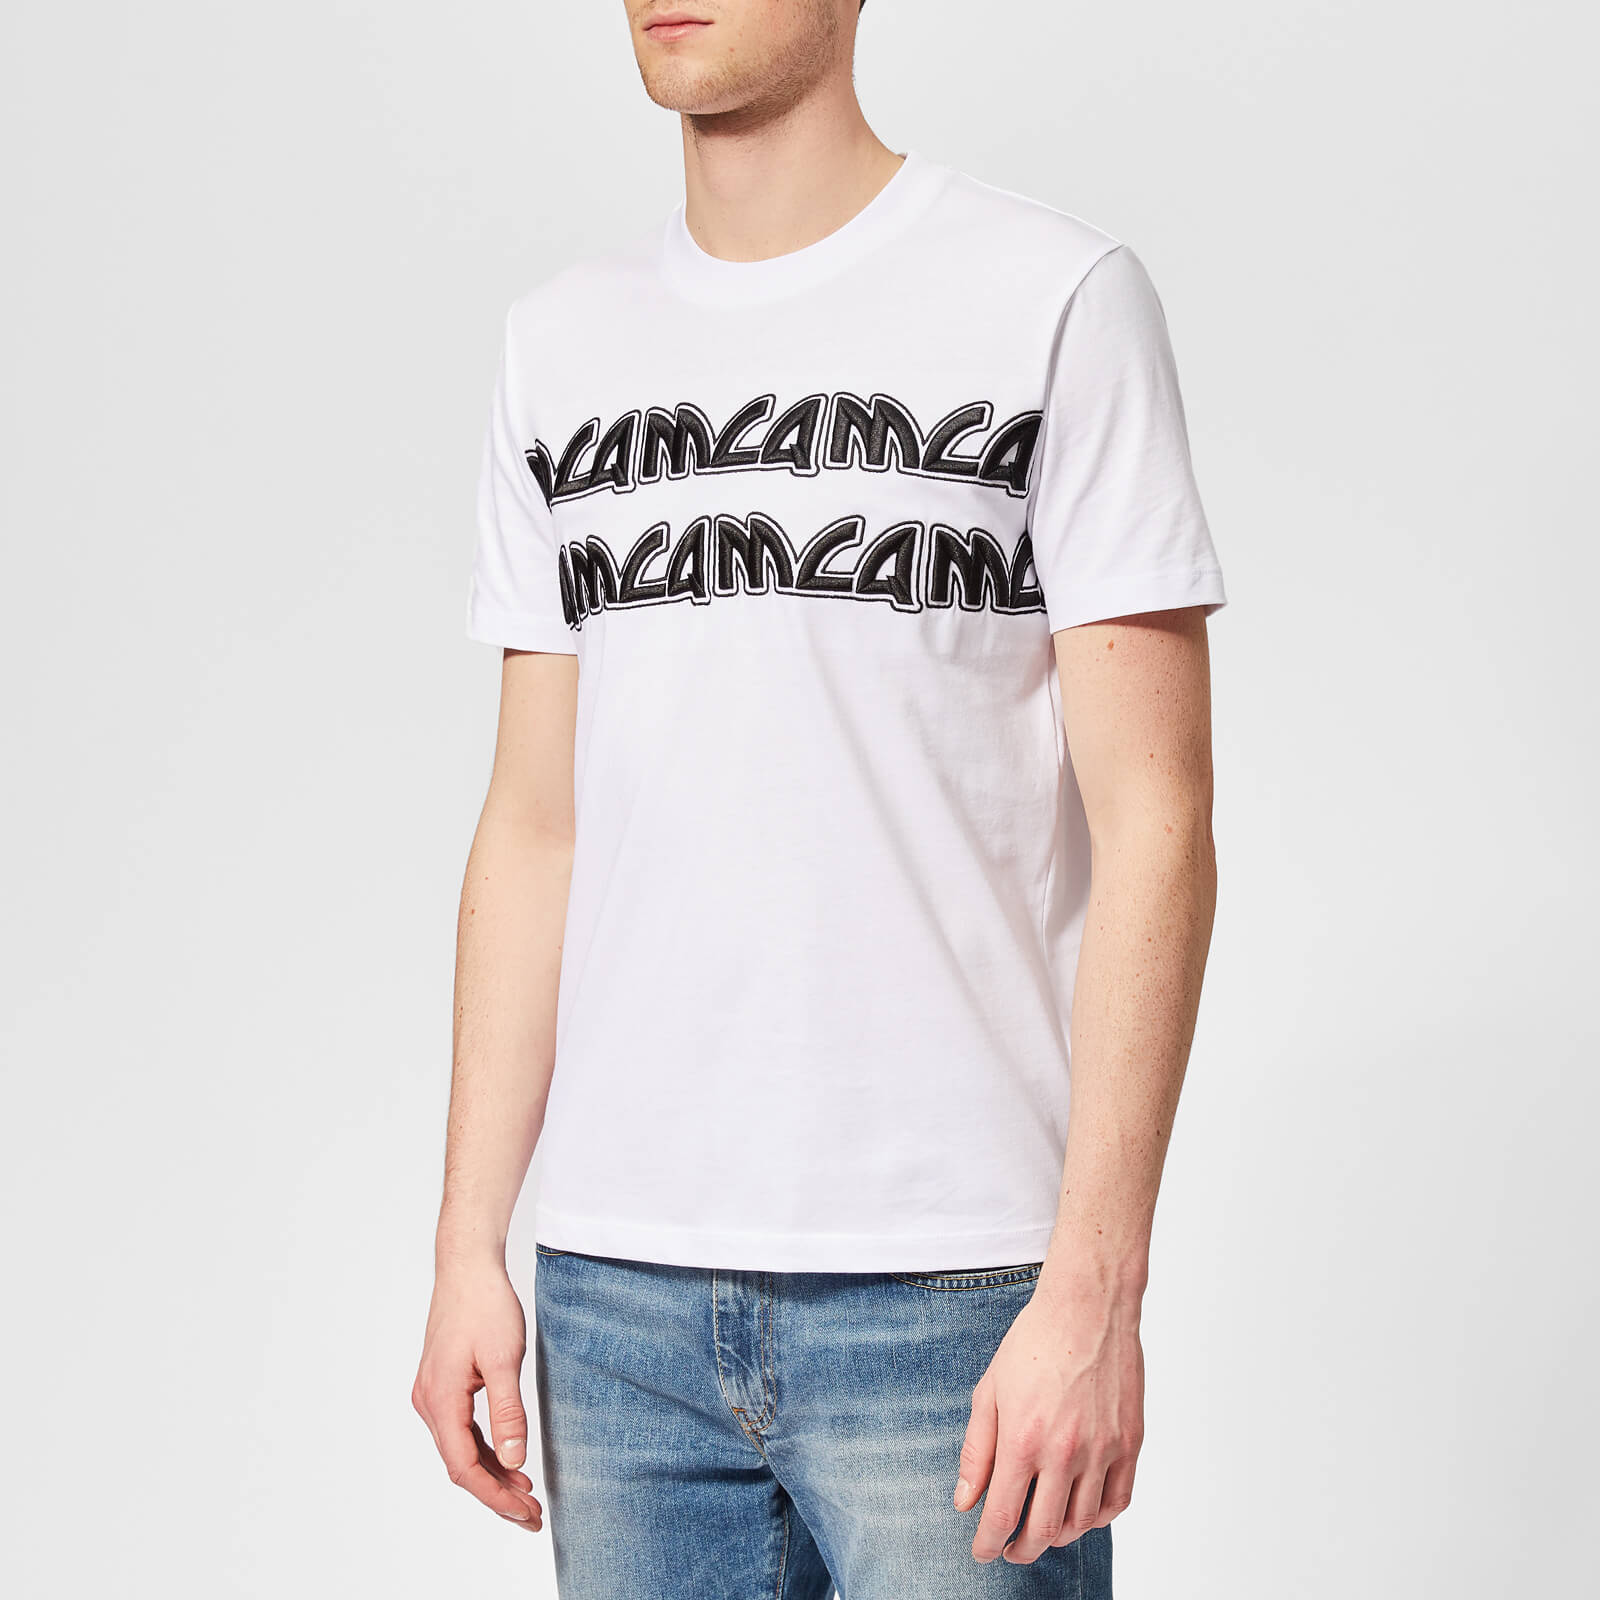 a3bac82fdd0 McQ Alexander McQueen Men's Metal Logo T-Shirt - Optic White - Free UK  Delivery over £50